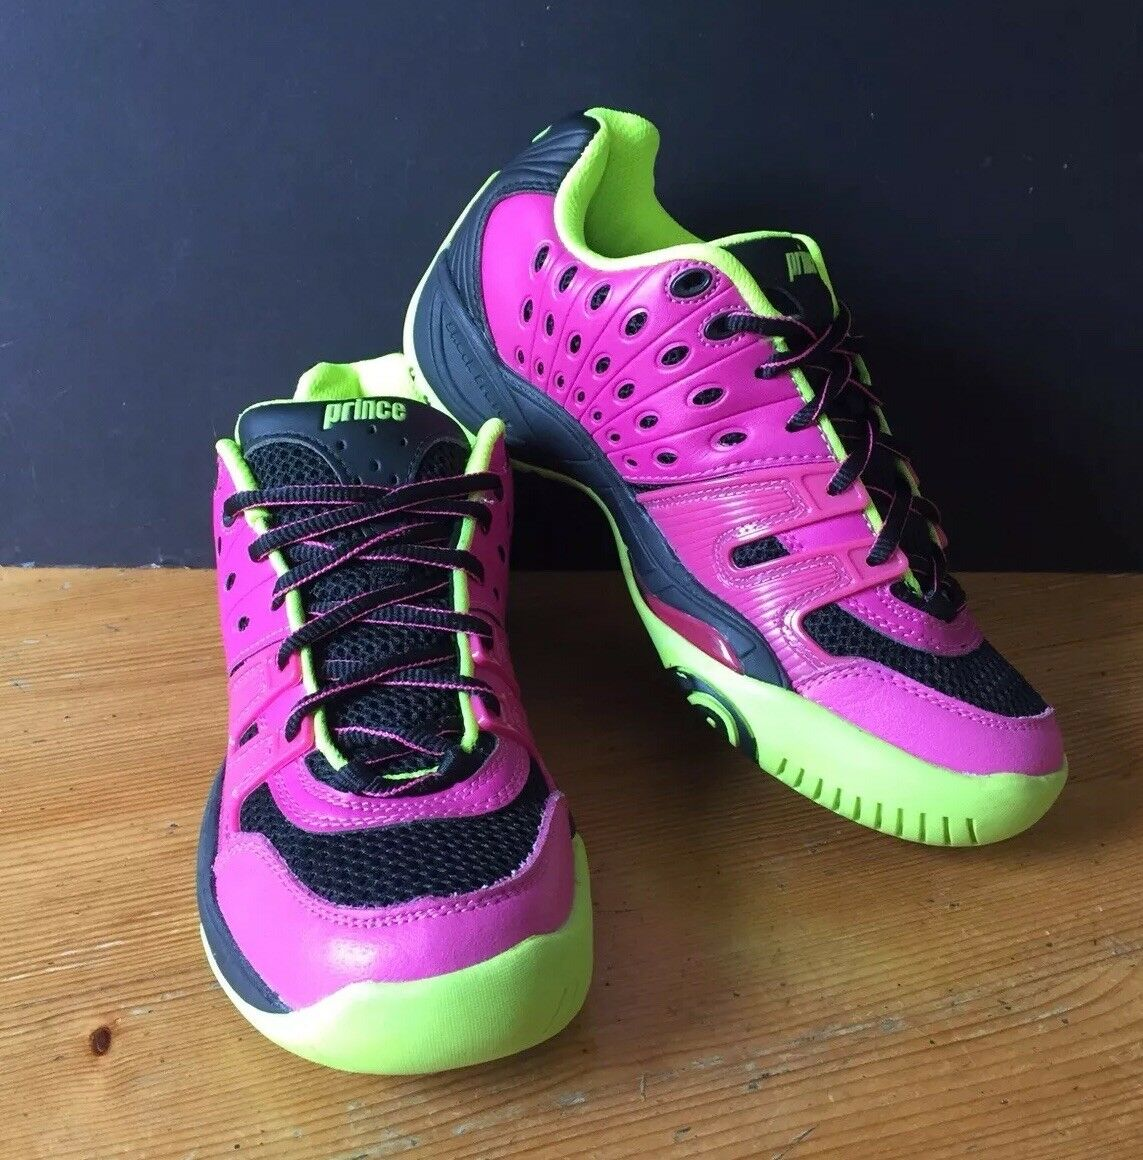 Prince T22 Tennis shoes Women's UK Size 4.5 Pink Neon Yellow Trainers